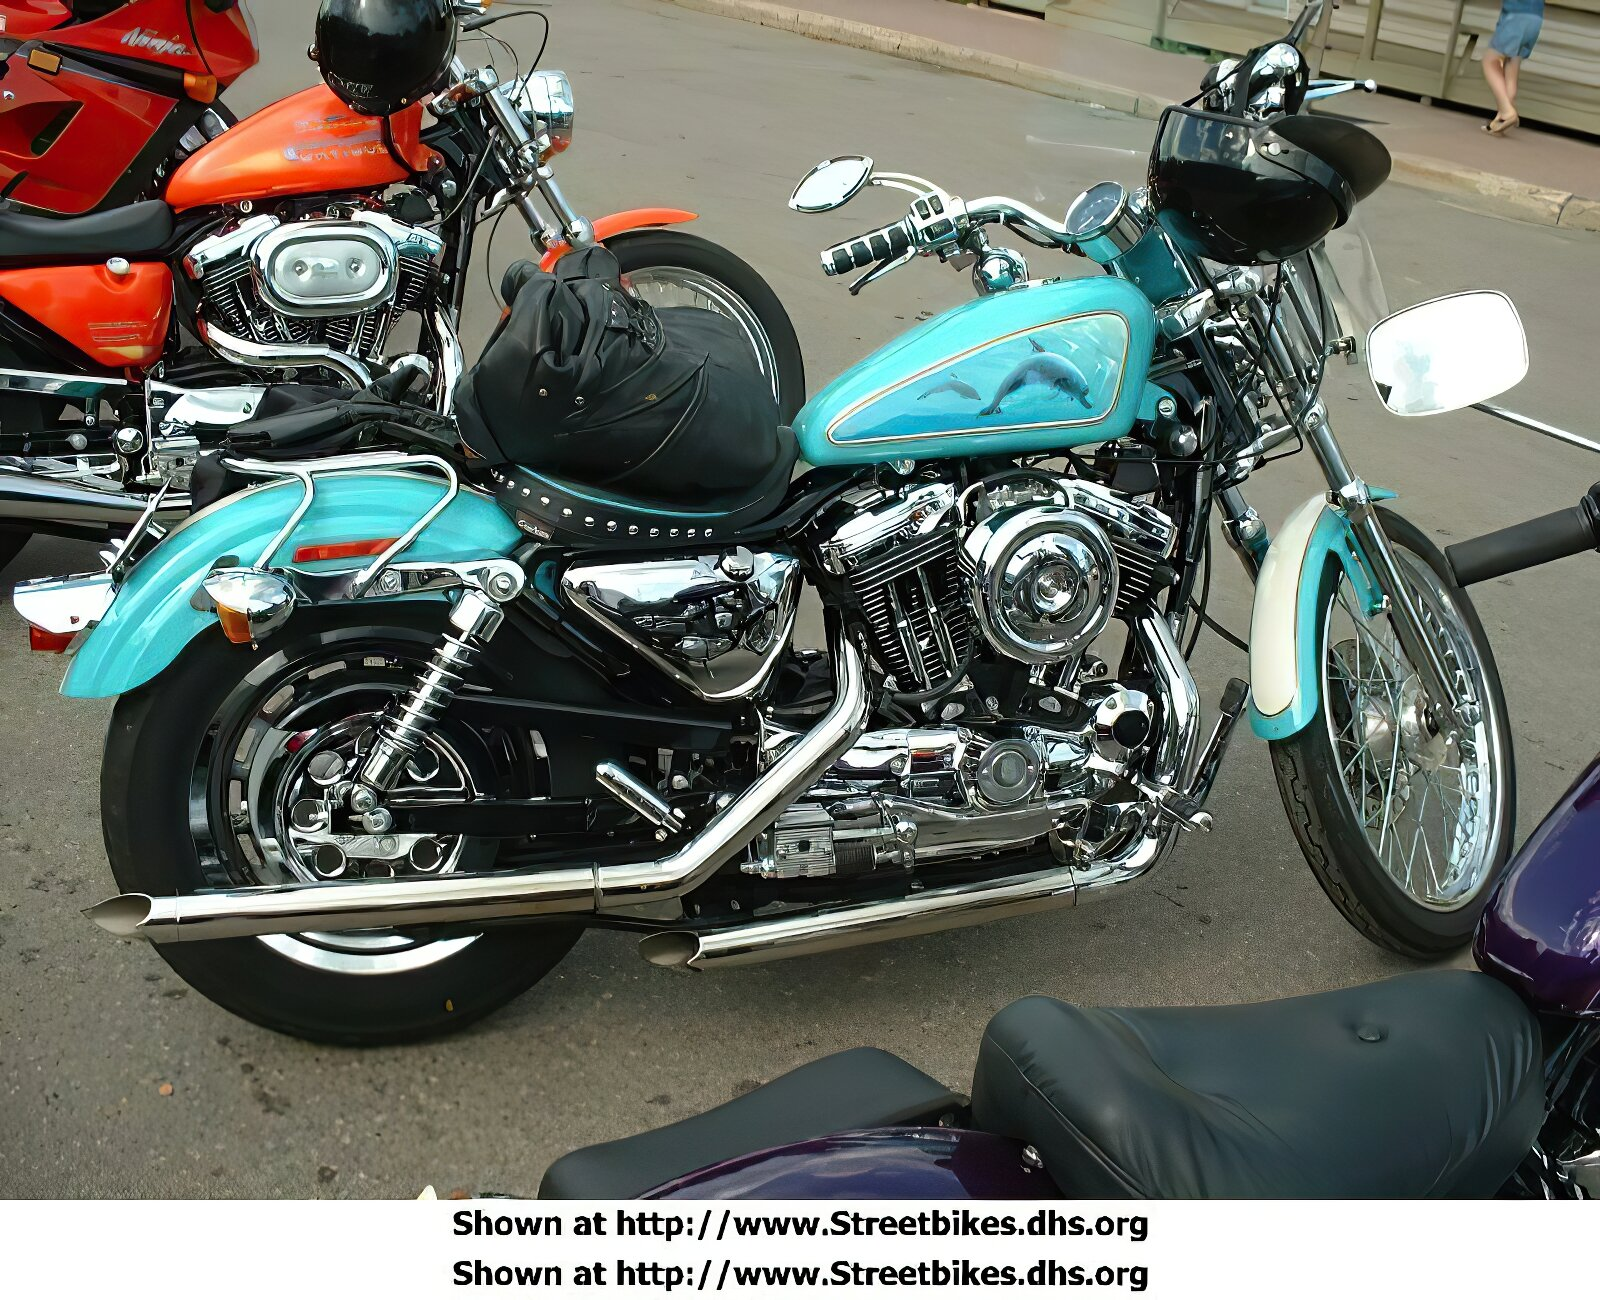 Harley-Davidson Unknown (HD) - ID: 1199